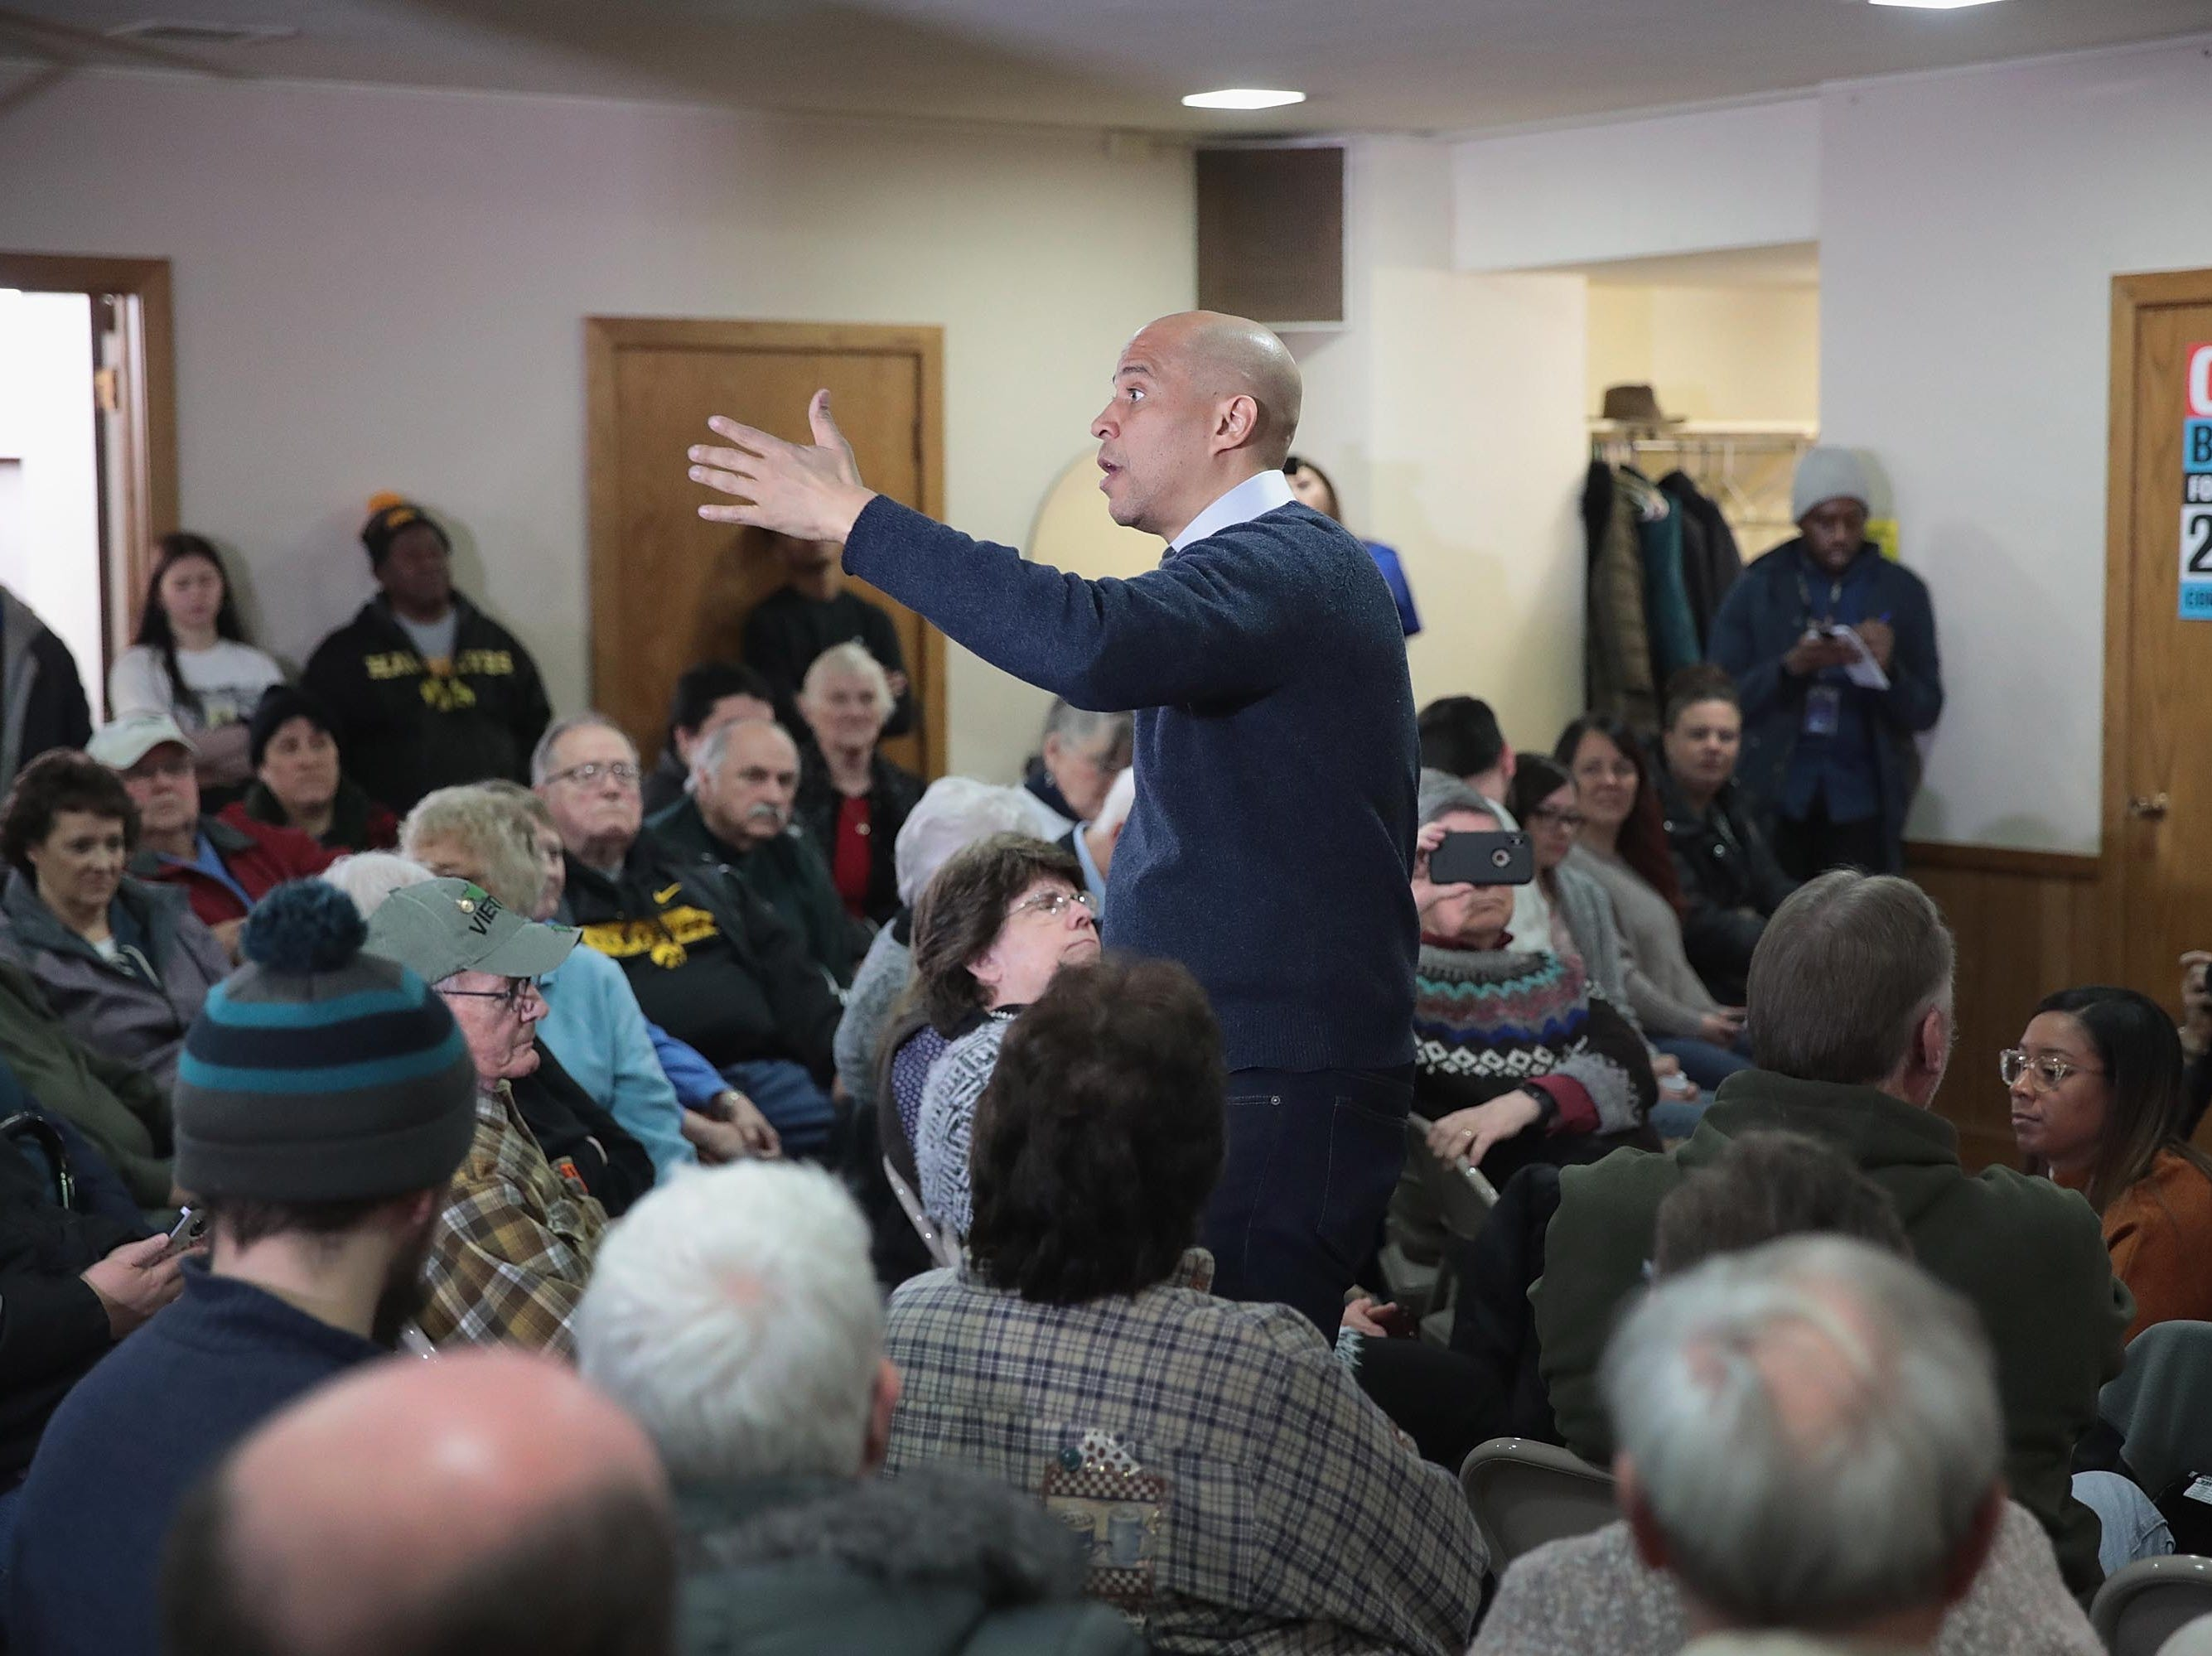 MASON CITY, IOWA - FEBRUARY 08: U.S Senator Cory Booker (D-NJ) speaks to guests during a campaign event in the basement at the First Congressional United Church of Christ on February 08, 2019 in Mason City, Iowa.  Booker, whose has family from Iowa, is in the state campaigning for the 2020 Democratic nomination for president. (Photo by Scott Olson/Getty Images)